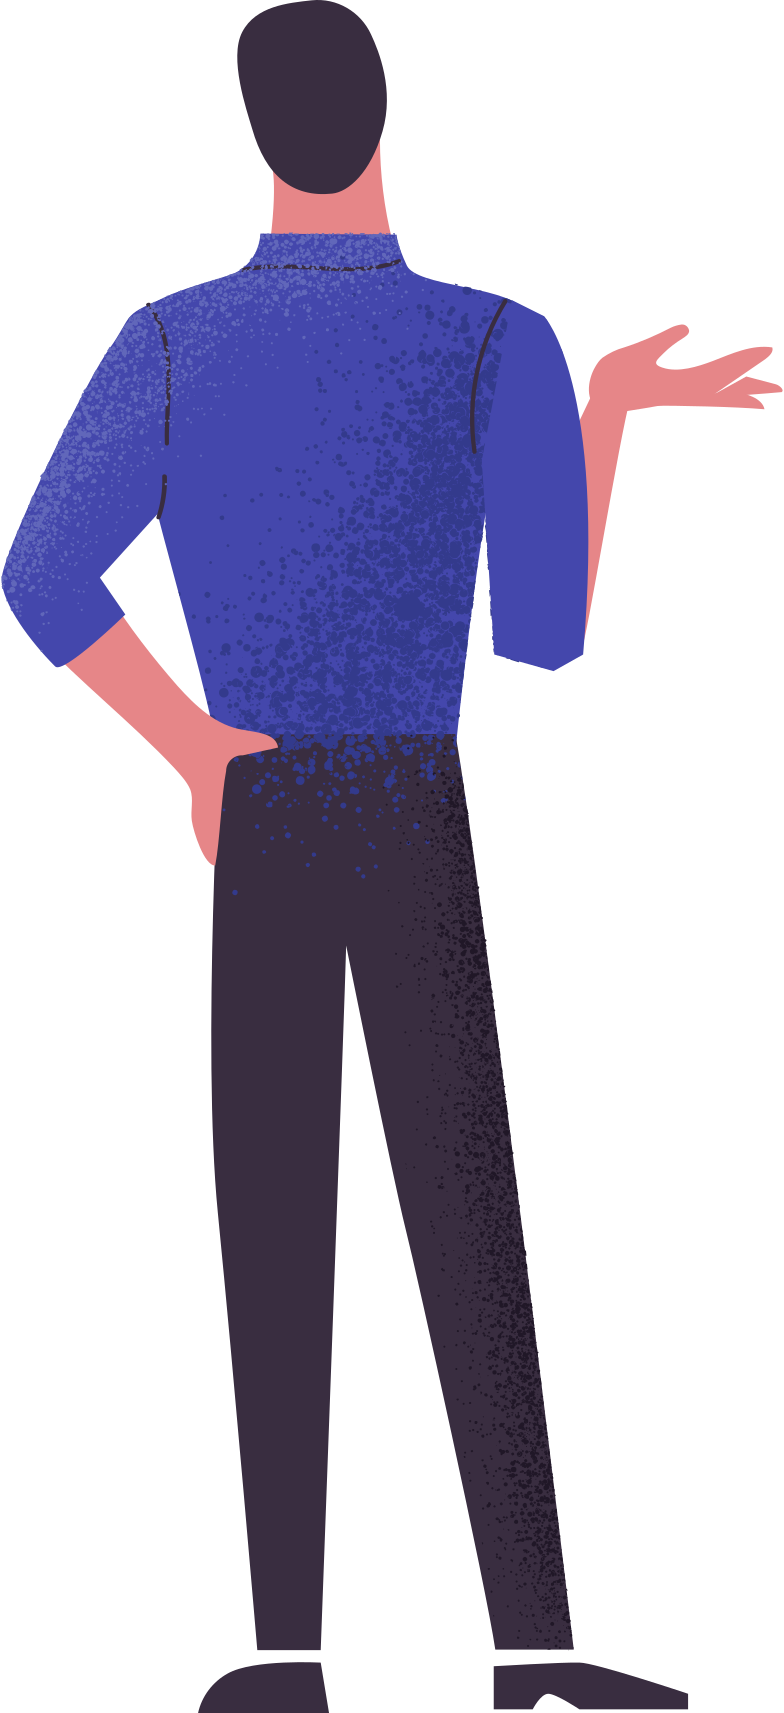 man from behind Clipart illustration in PNG, SVG